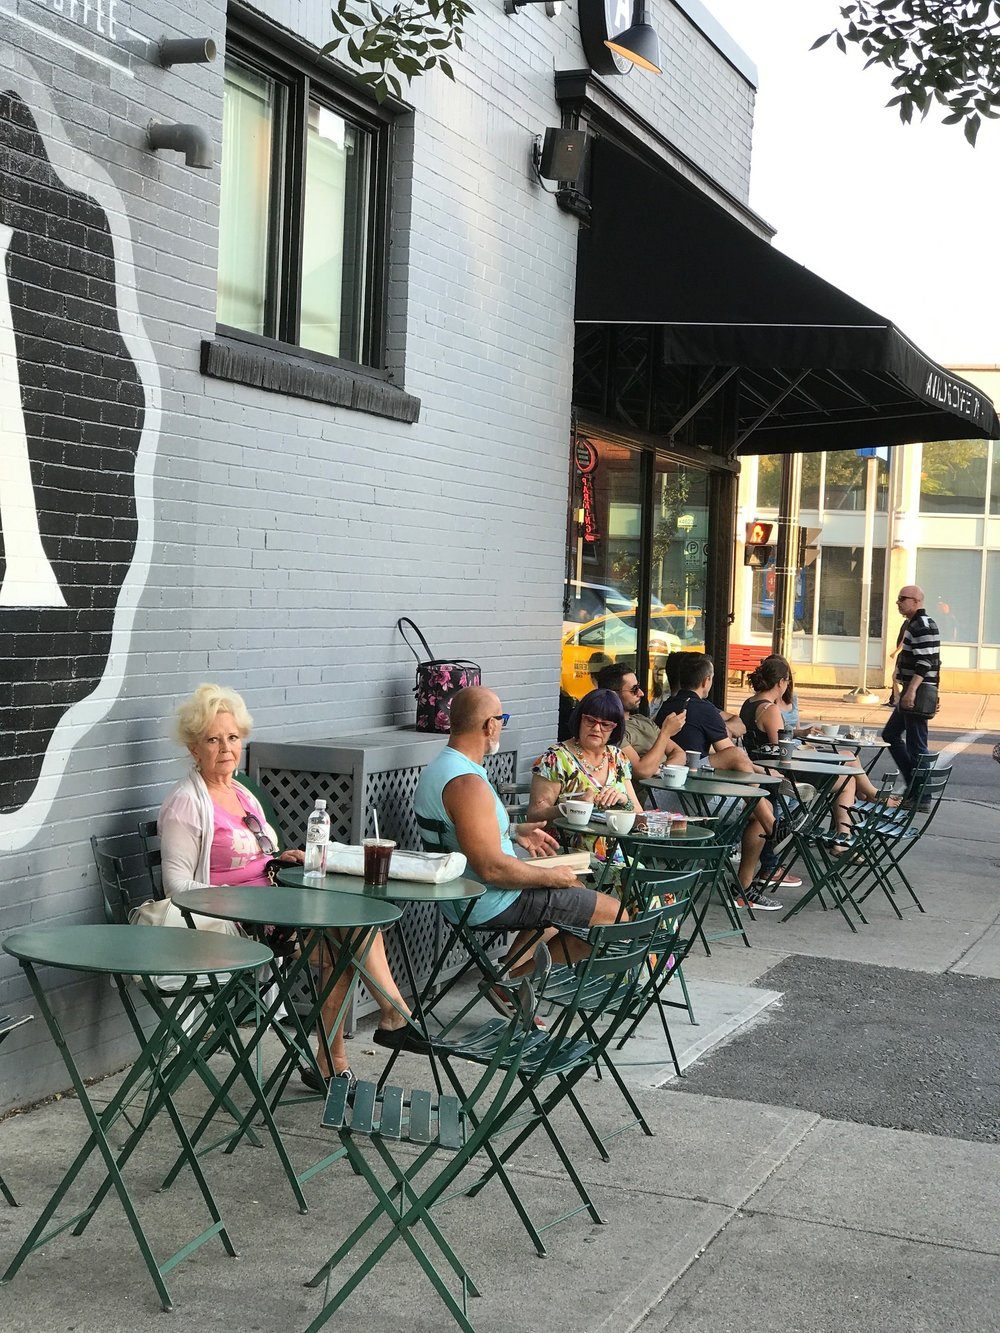 Sidewalk cafes are scattered throughout the City Centre.